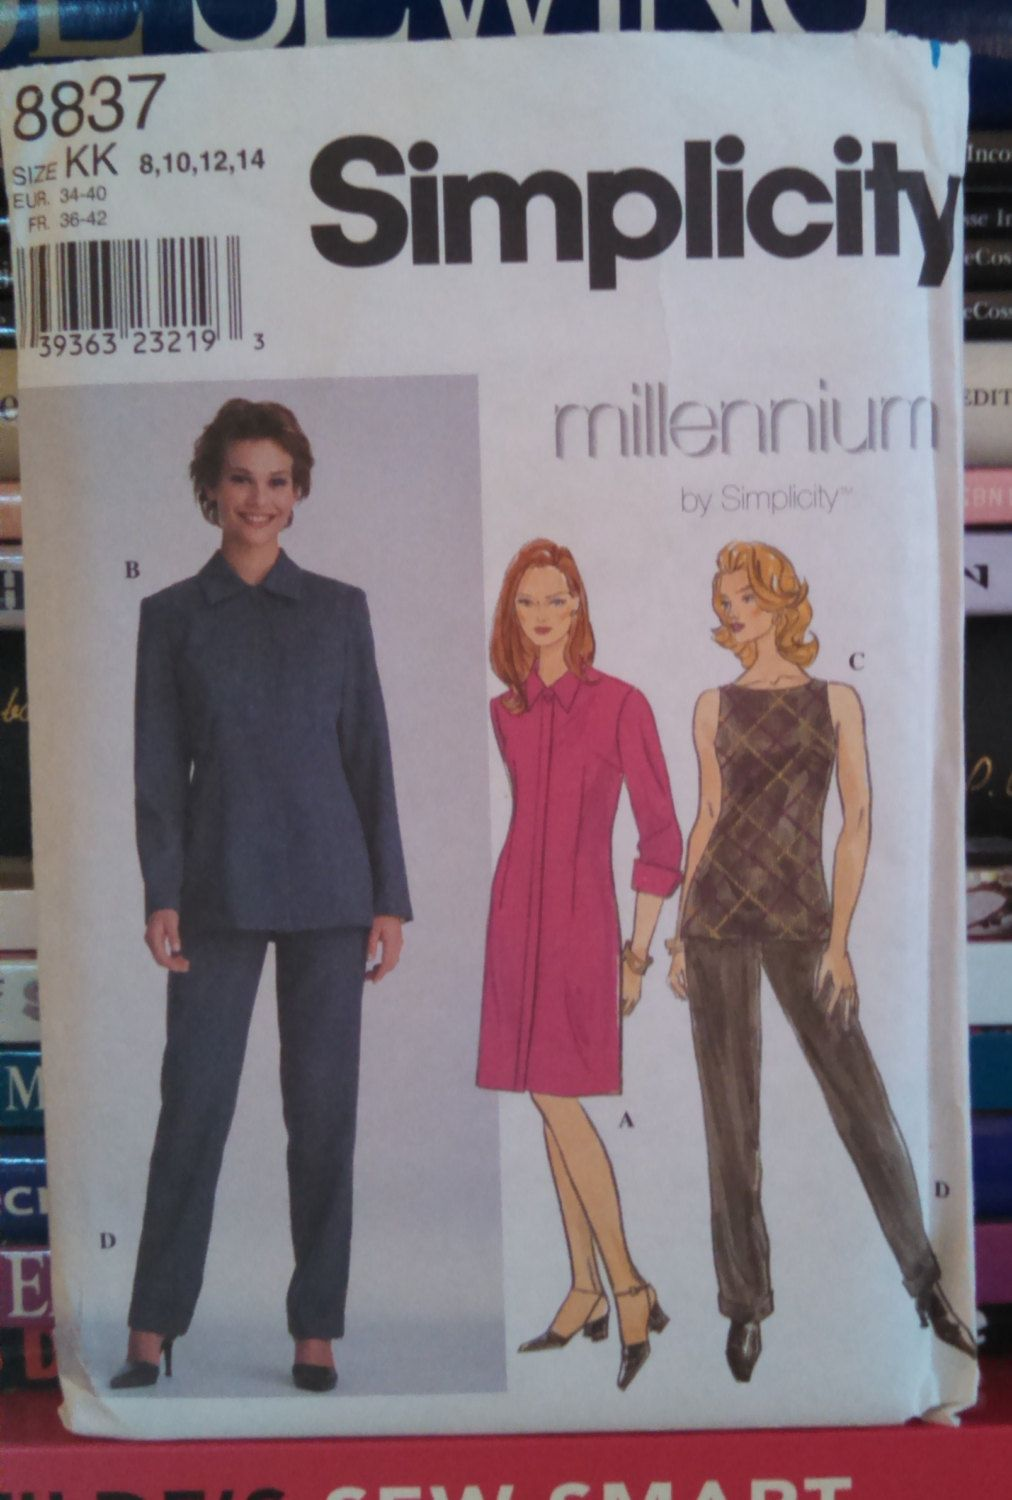 1999 Millennium by Simplicity 8837-Lined, Semi-Fitted Coatdress-Jacket w Fly Front Button Opening-Top and Pants-Size 8-10-12-14-UNCUT by PaperDiversities on Etsy